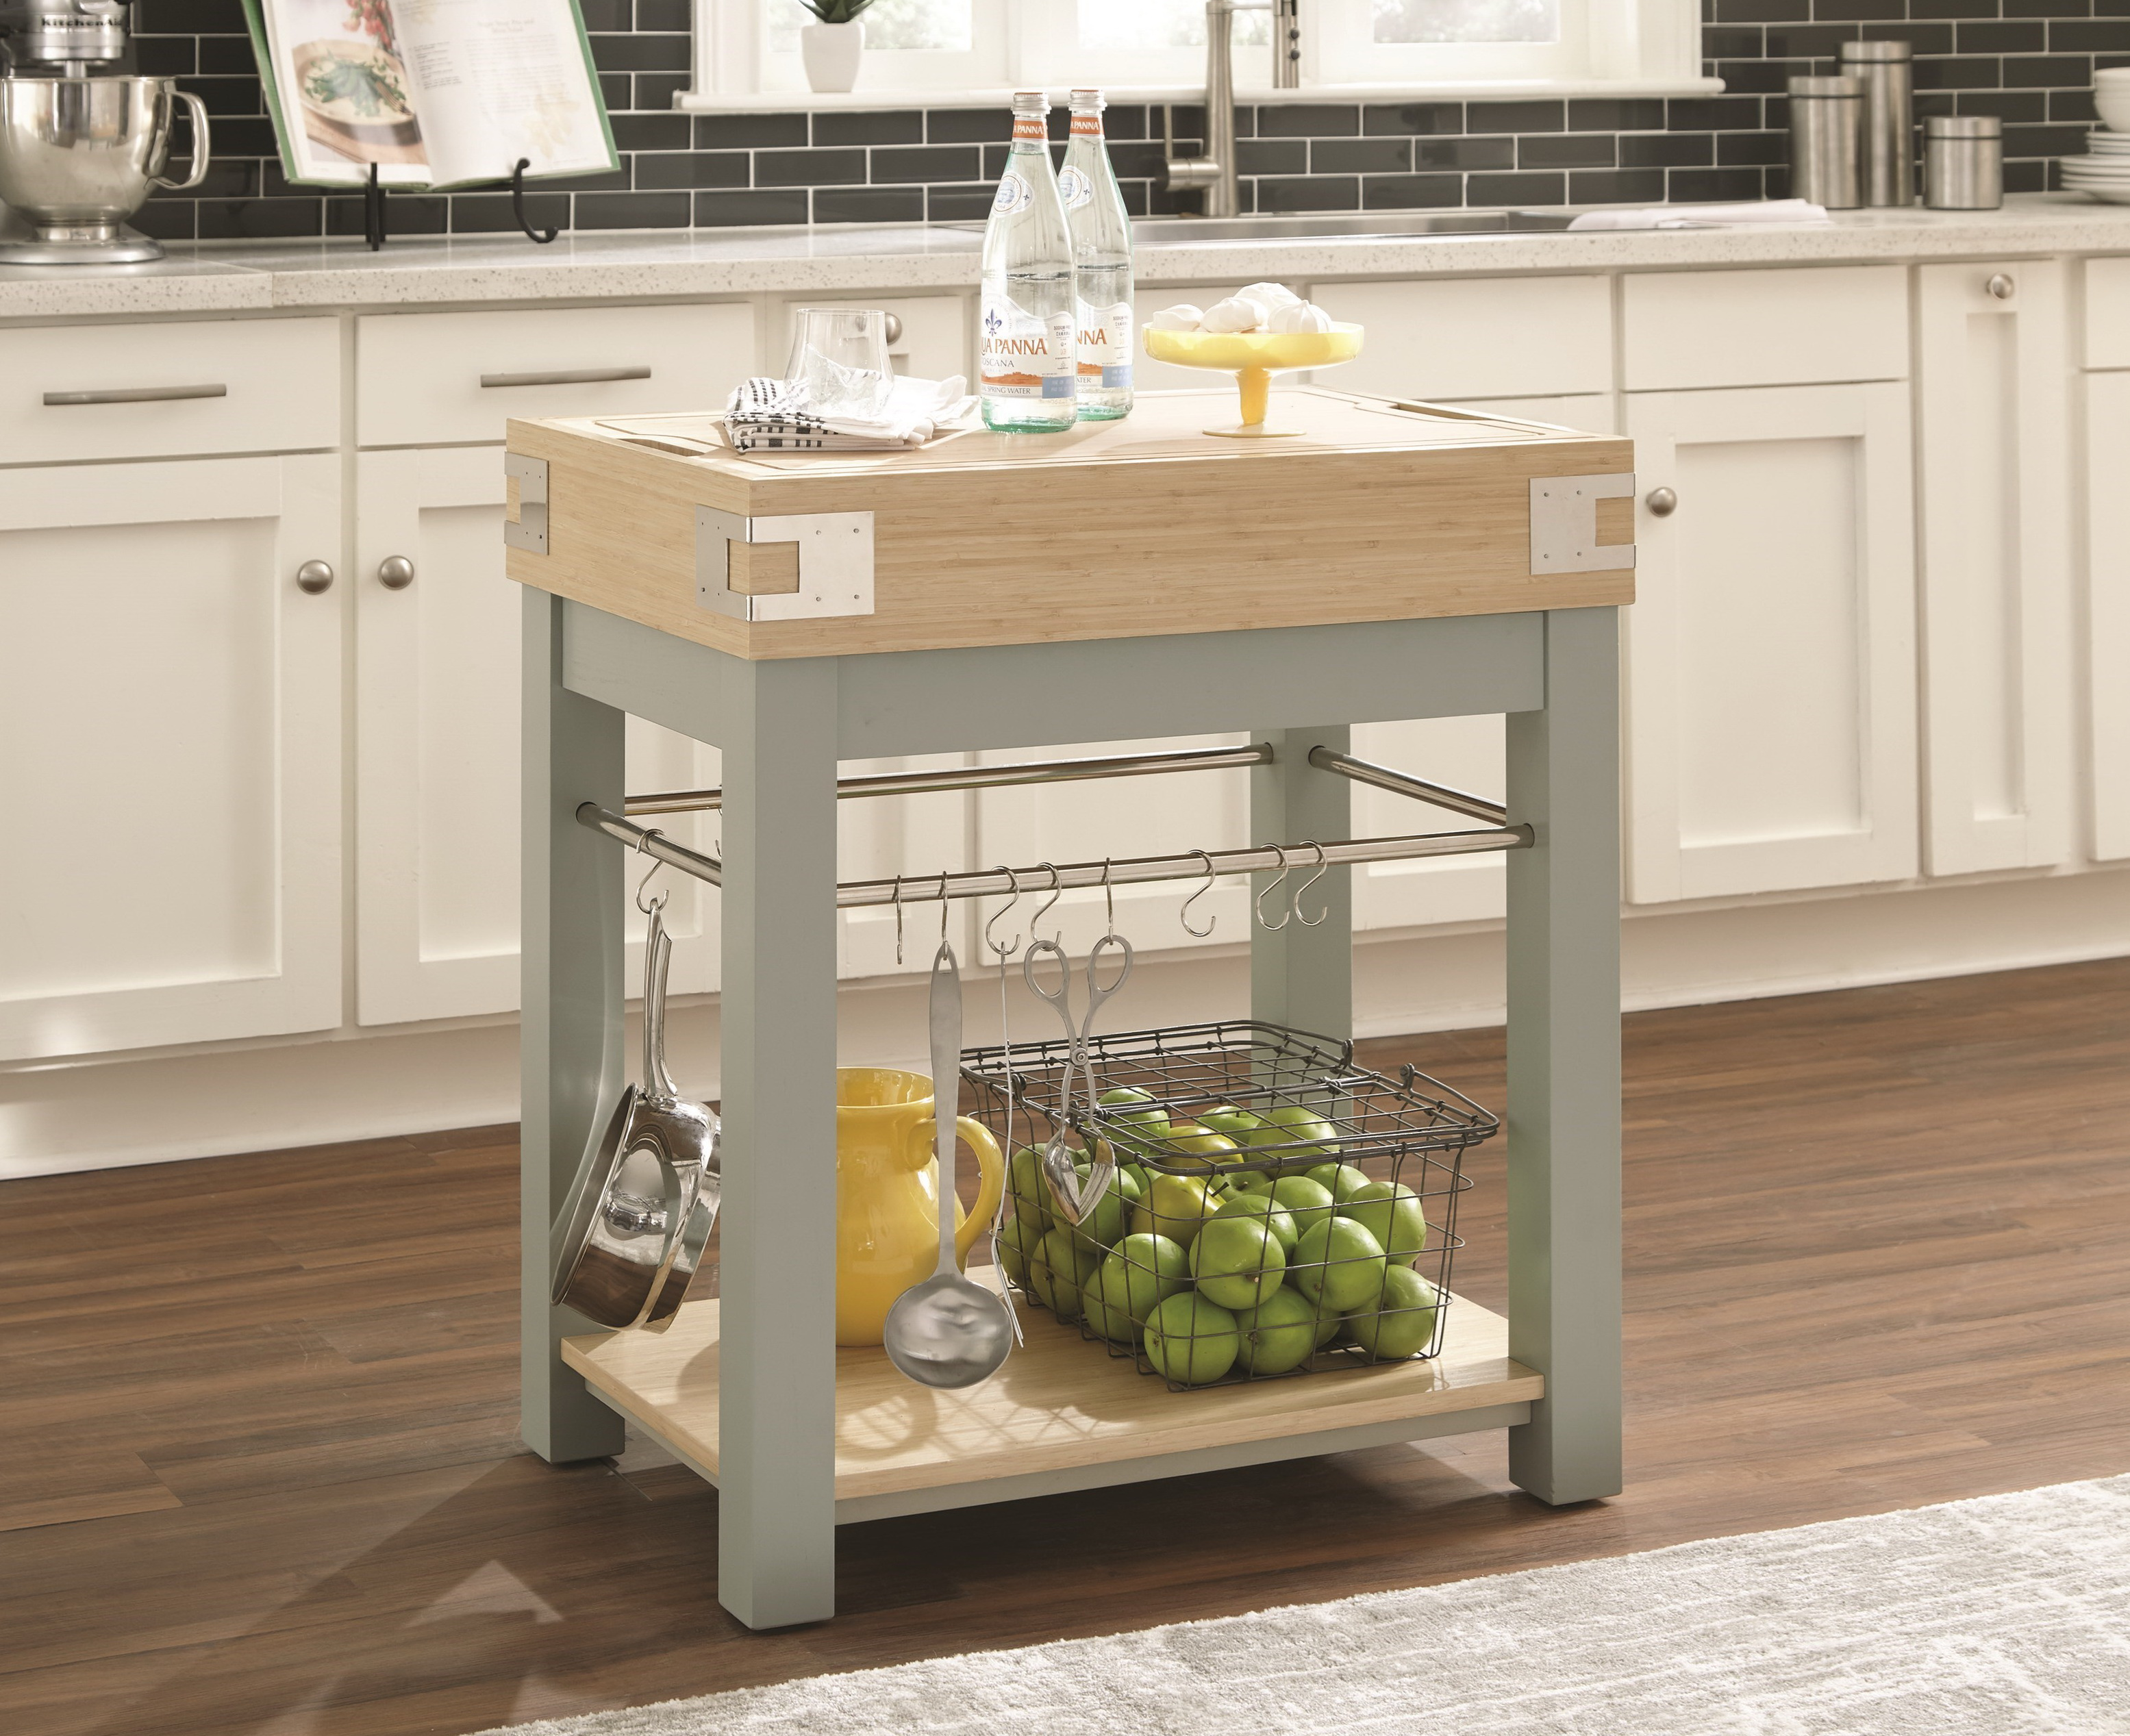 10298 Light Blue/ Oak Kitchen Island with Removable Cutting Board